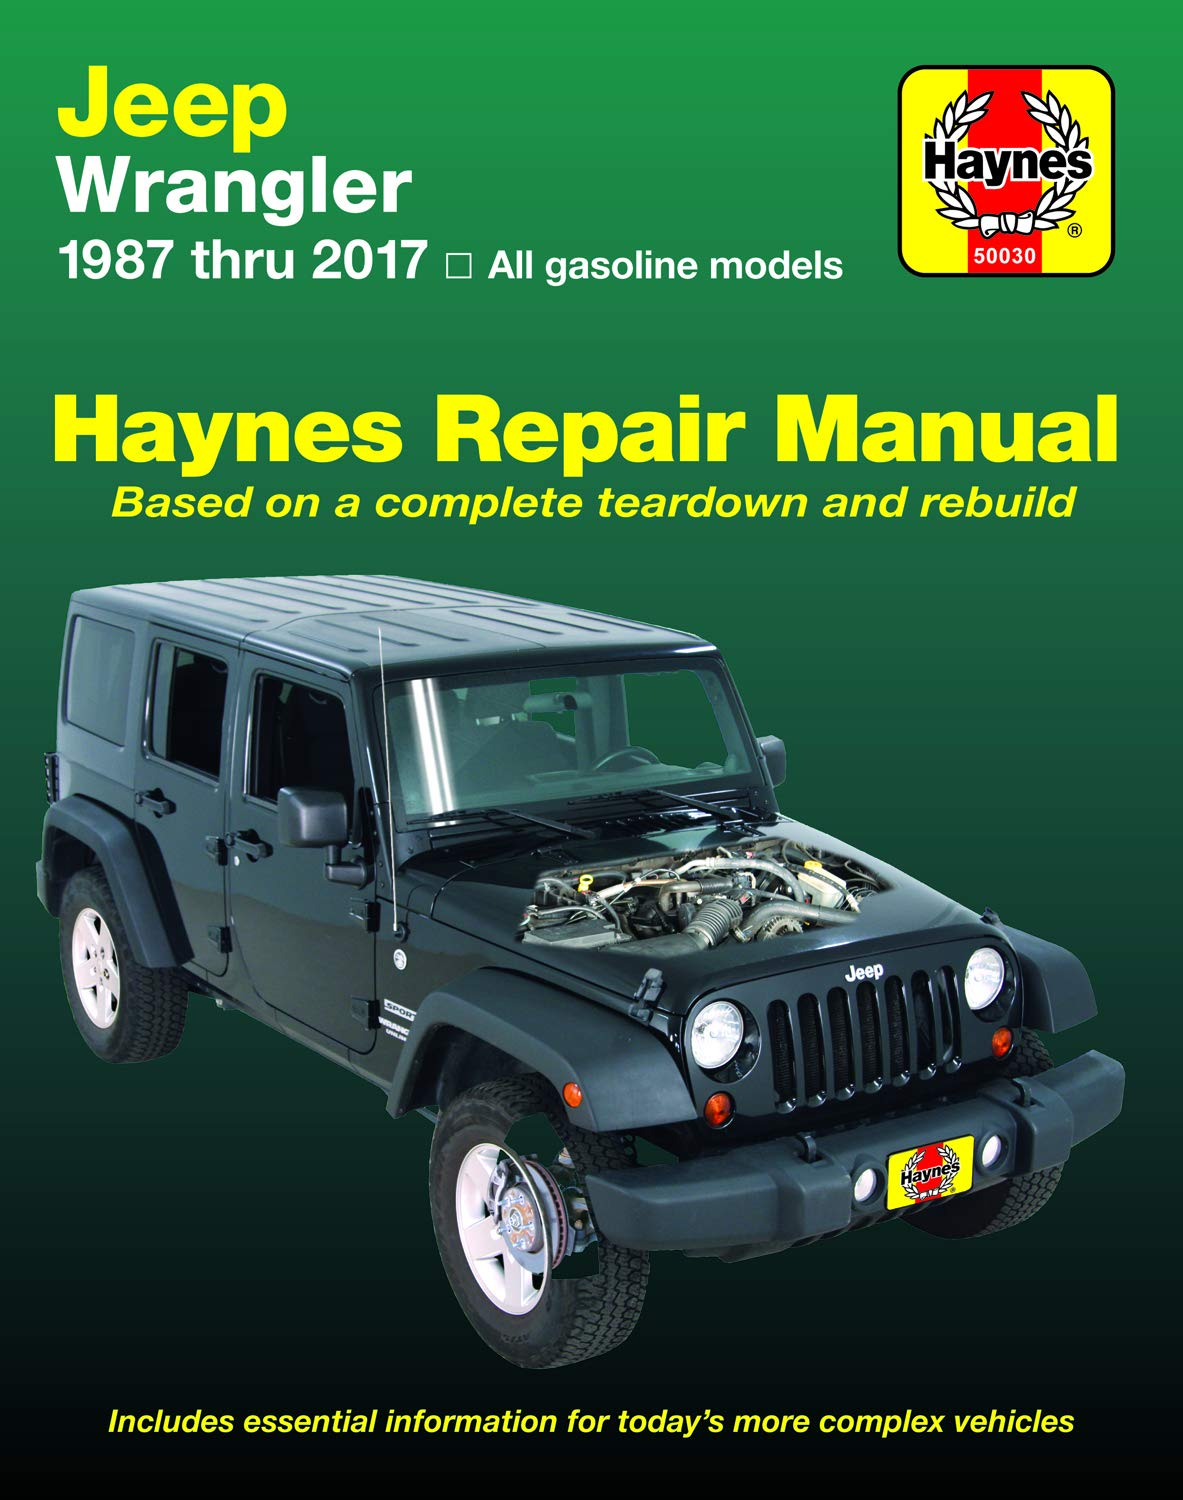 Jeep Wrangler 4-cyl & 6-cyl Gas Engine, 2WD & 4WD Models (87